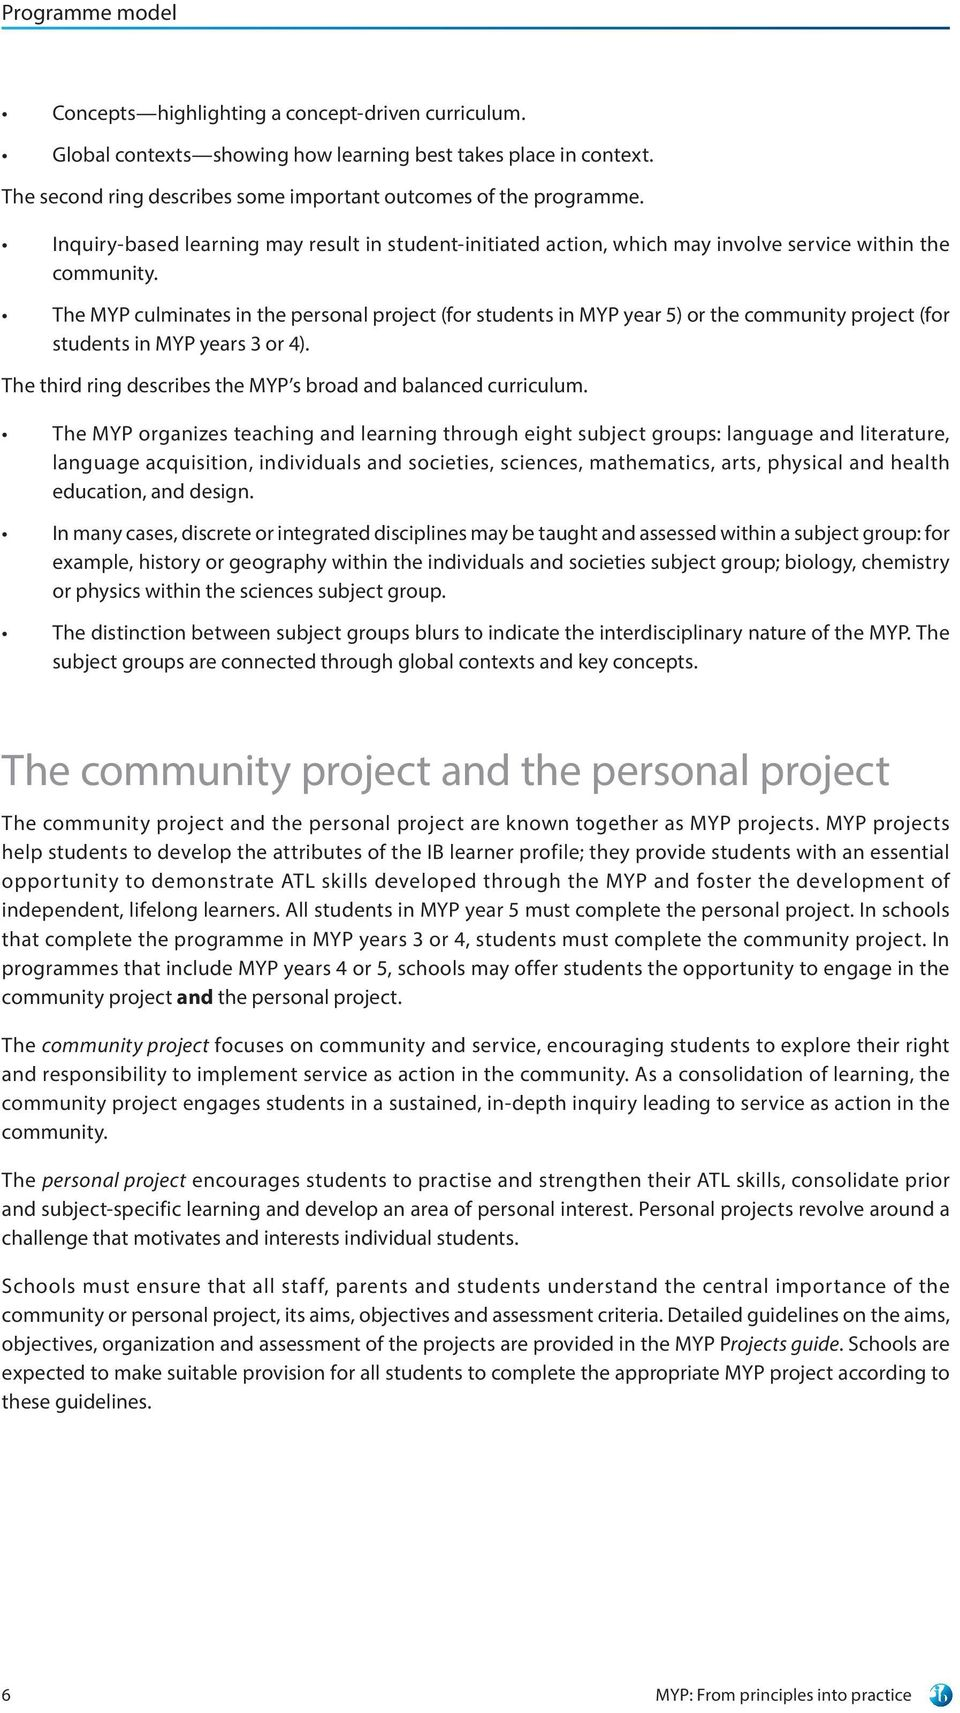 002 Essay Example Personal Project Guide Myp From Principles Into Practice For Use September Exceptional Full